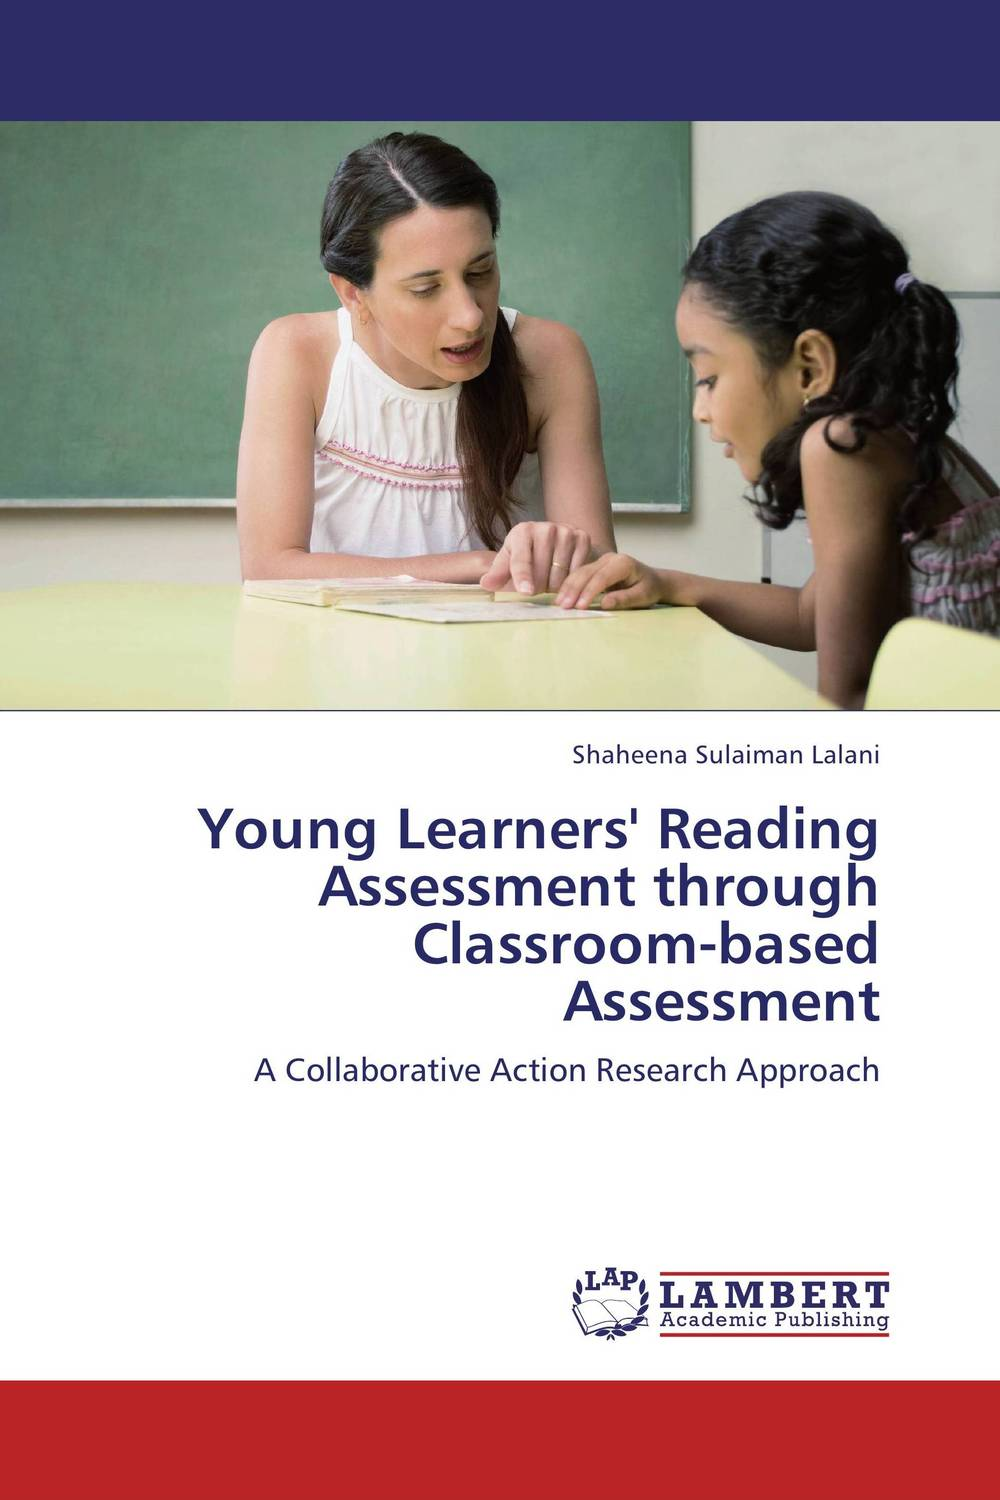 Young Learners' Reading Assessment through Classroom-based Assessment deborah meier differentiated assessment how to assess the learning potential of every student grades 6 12